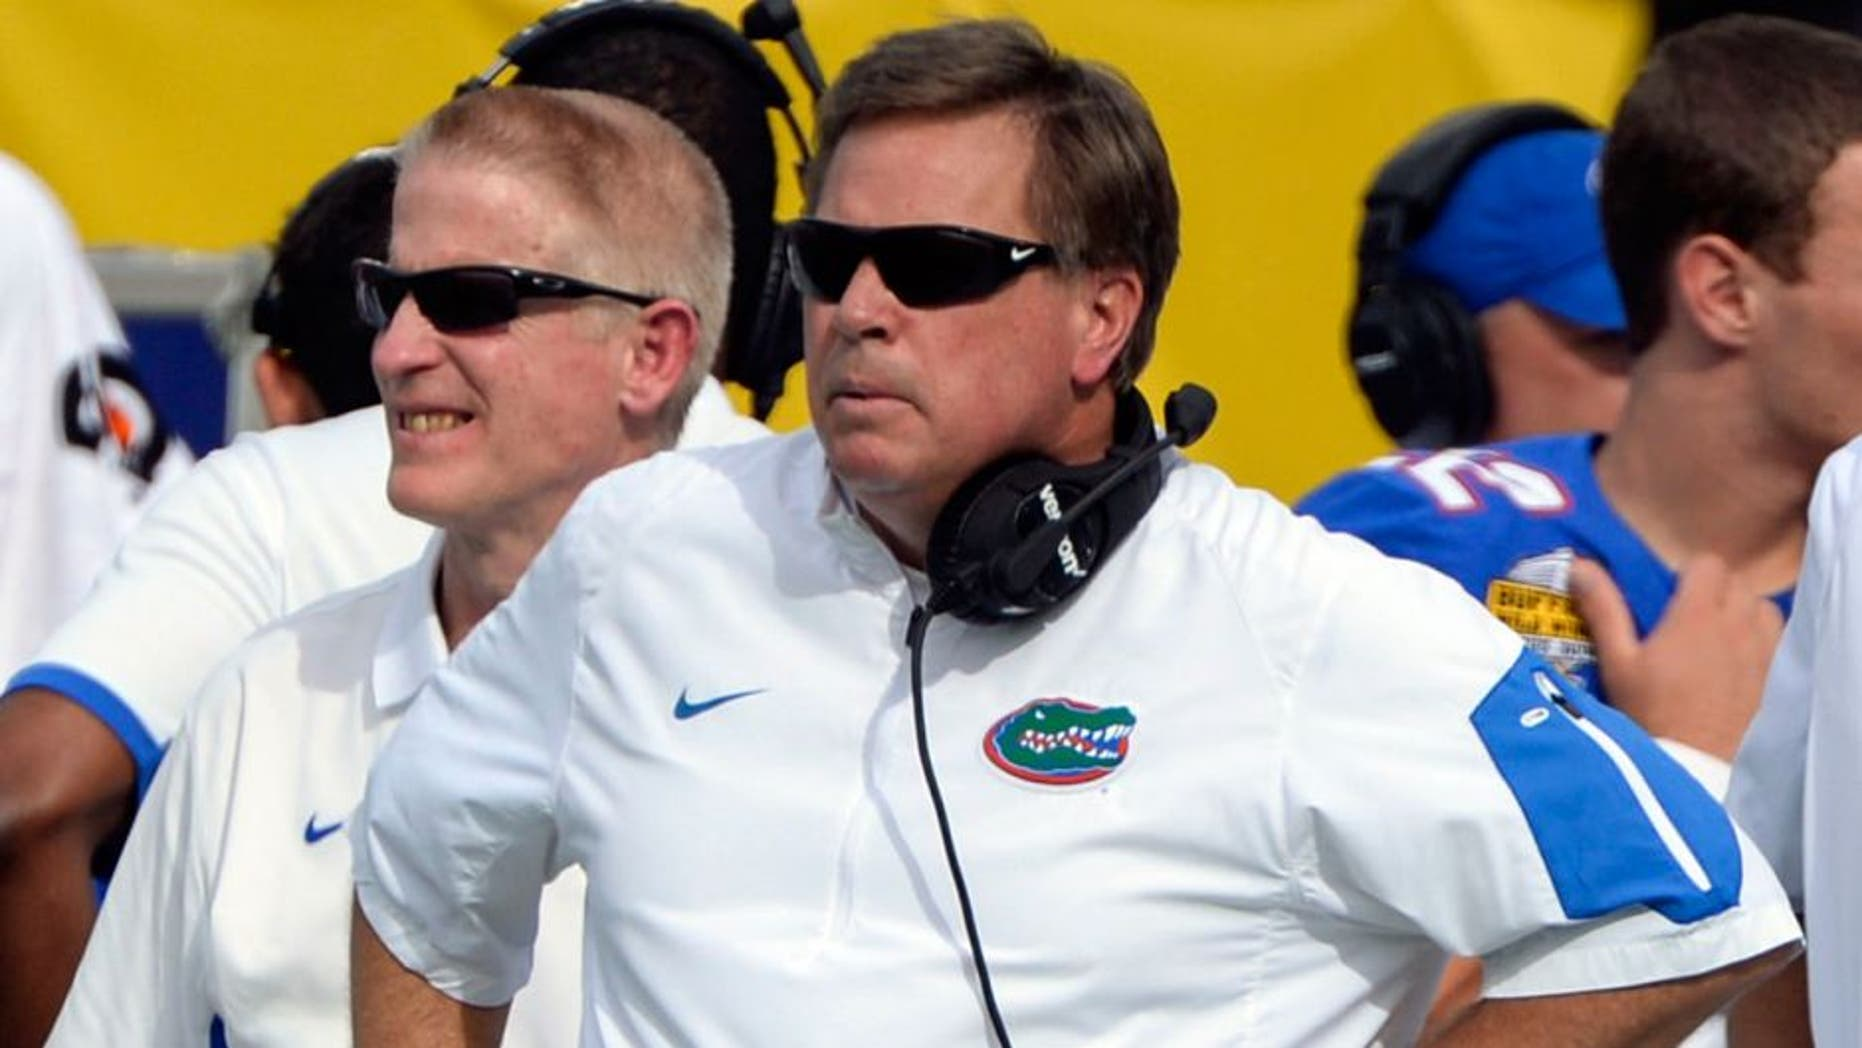 Jan 1, 2016; Orlando, FL, USA; Florida Gators head coach Jim McElwain looks onto the field during the second quarter against the Michigan Wolverines in the 2016 Citrus Bowl at Orlando Citrus Bowl Stadium. Mandatory Credit: Tommy Gilligan-USA TODAY Sports